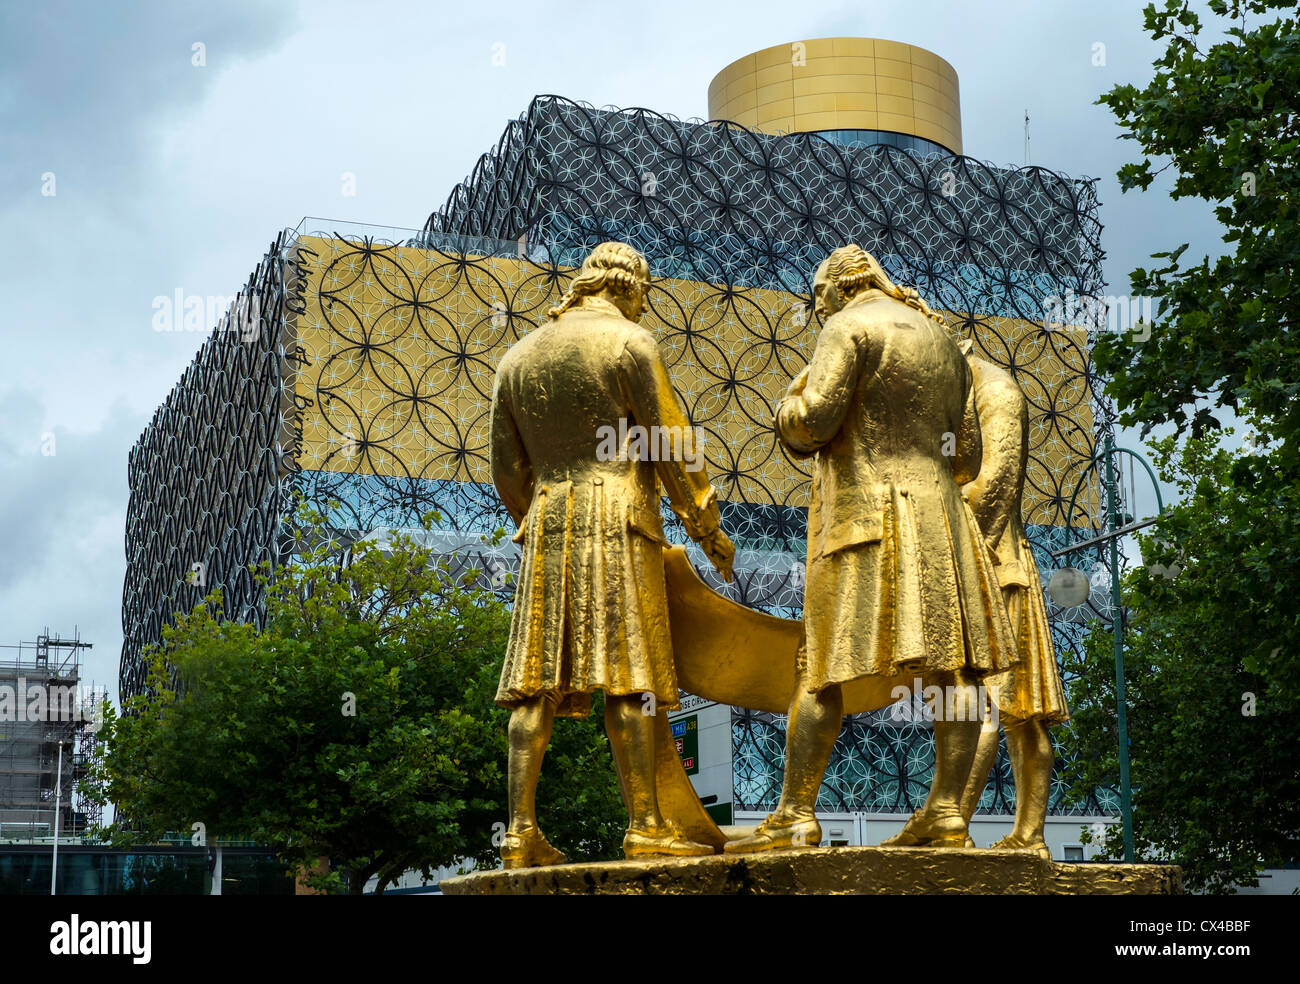 The three guilded figures of Watt, Boulton and Murdoch stand facing the new Library of Birmingham. - Stock Image